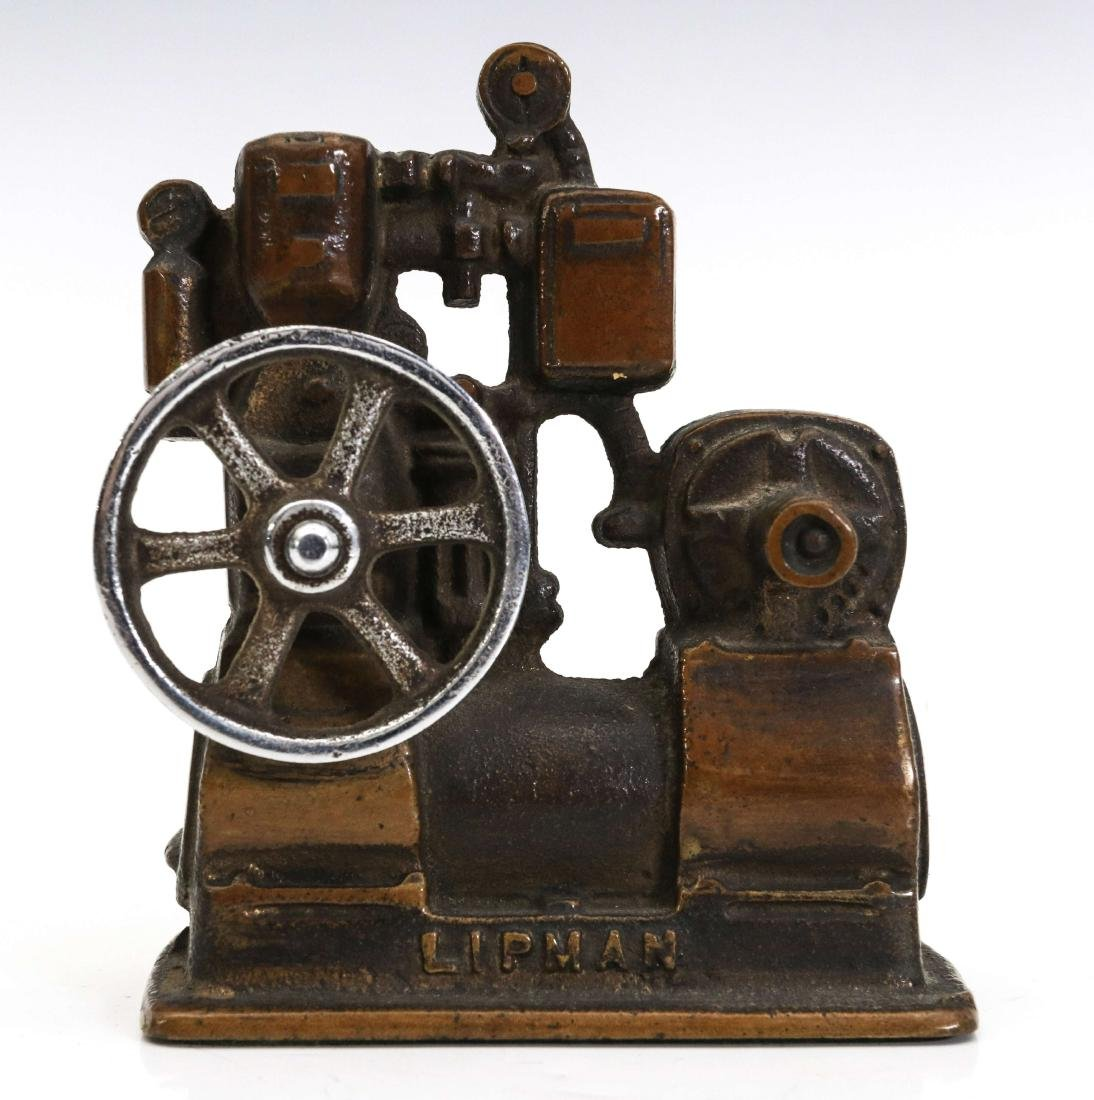 A LIPMAN FIGURAL ENGINE ADVERTISING PAPERWEIGHT